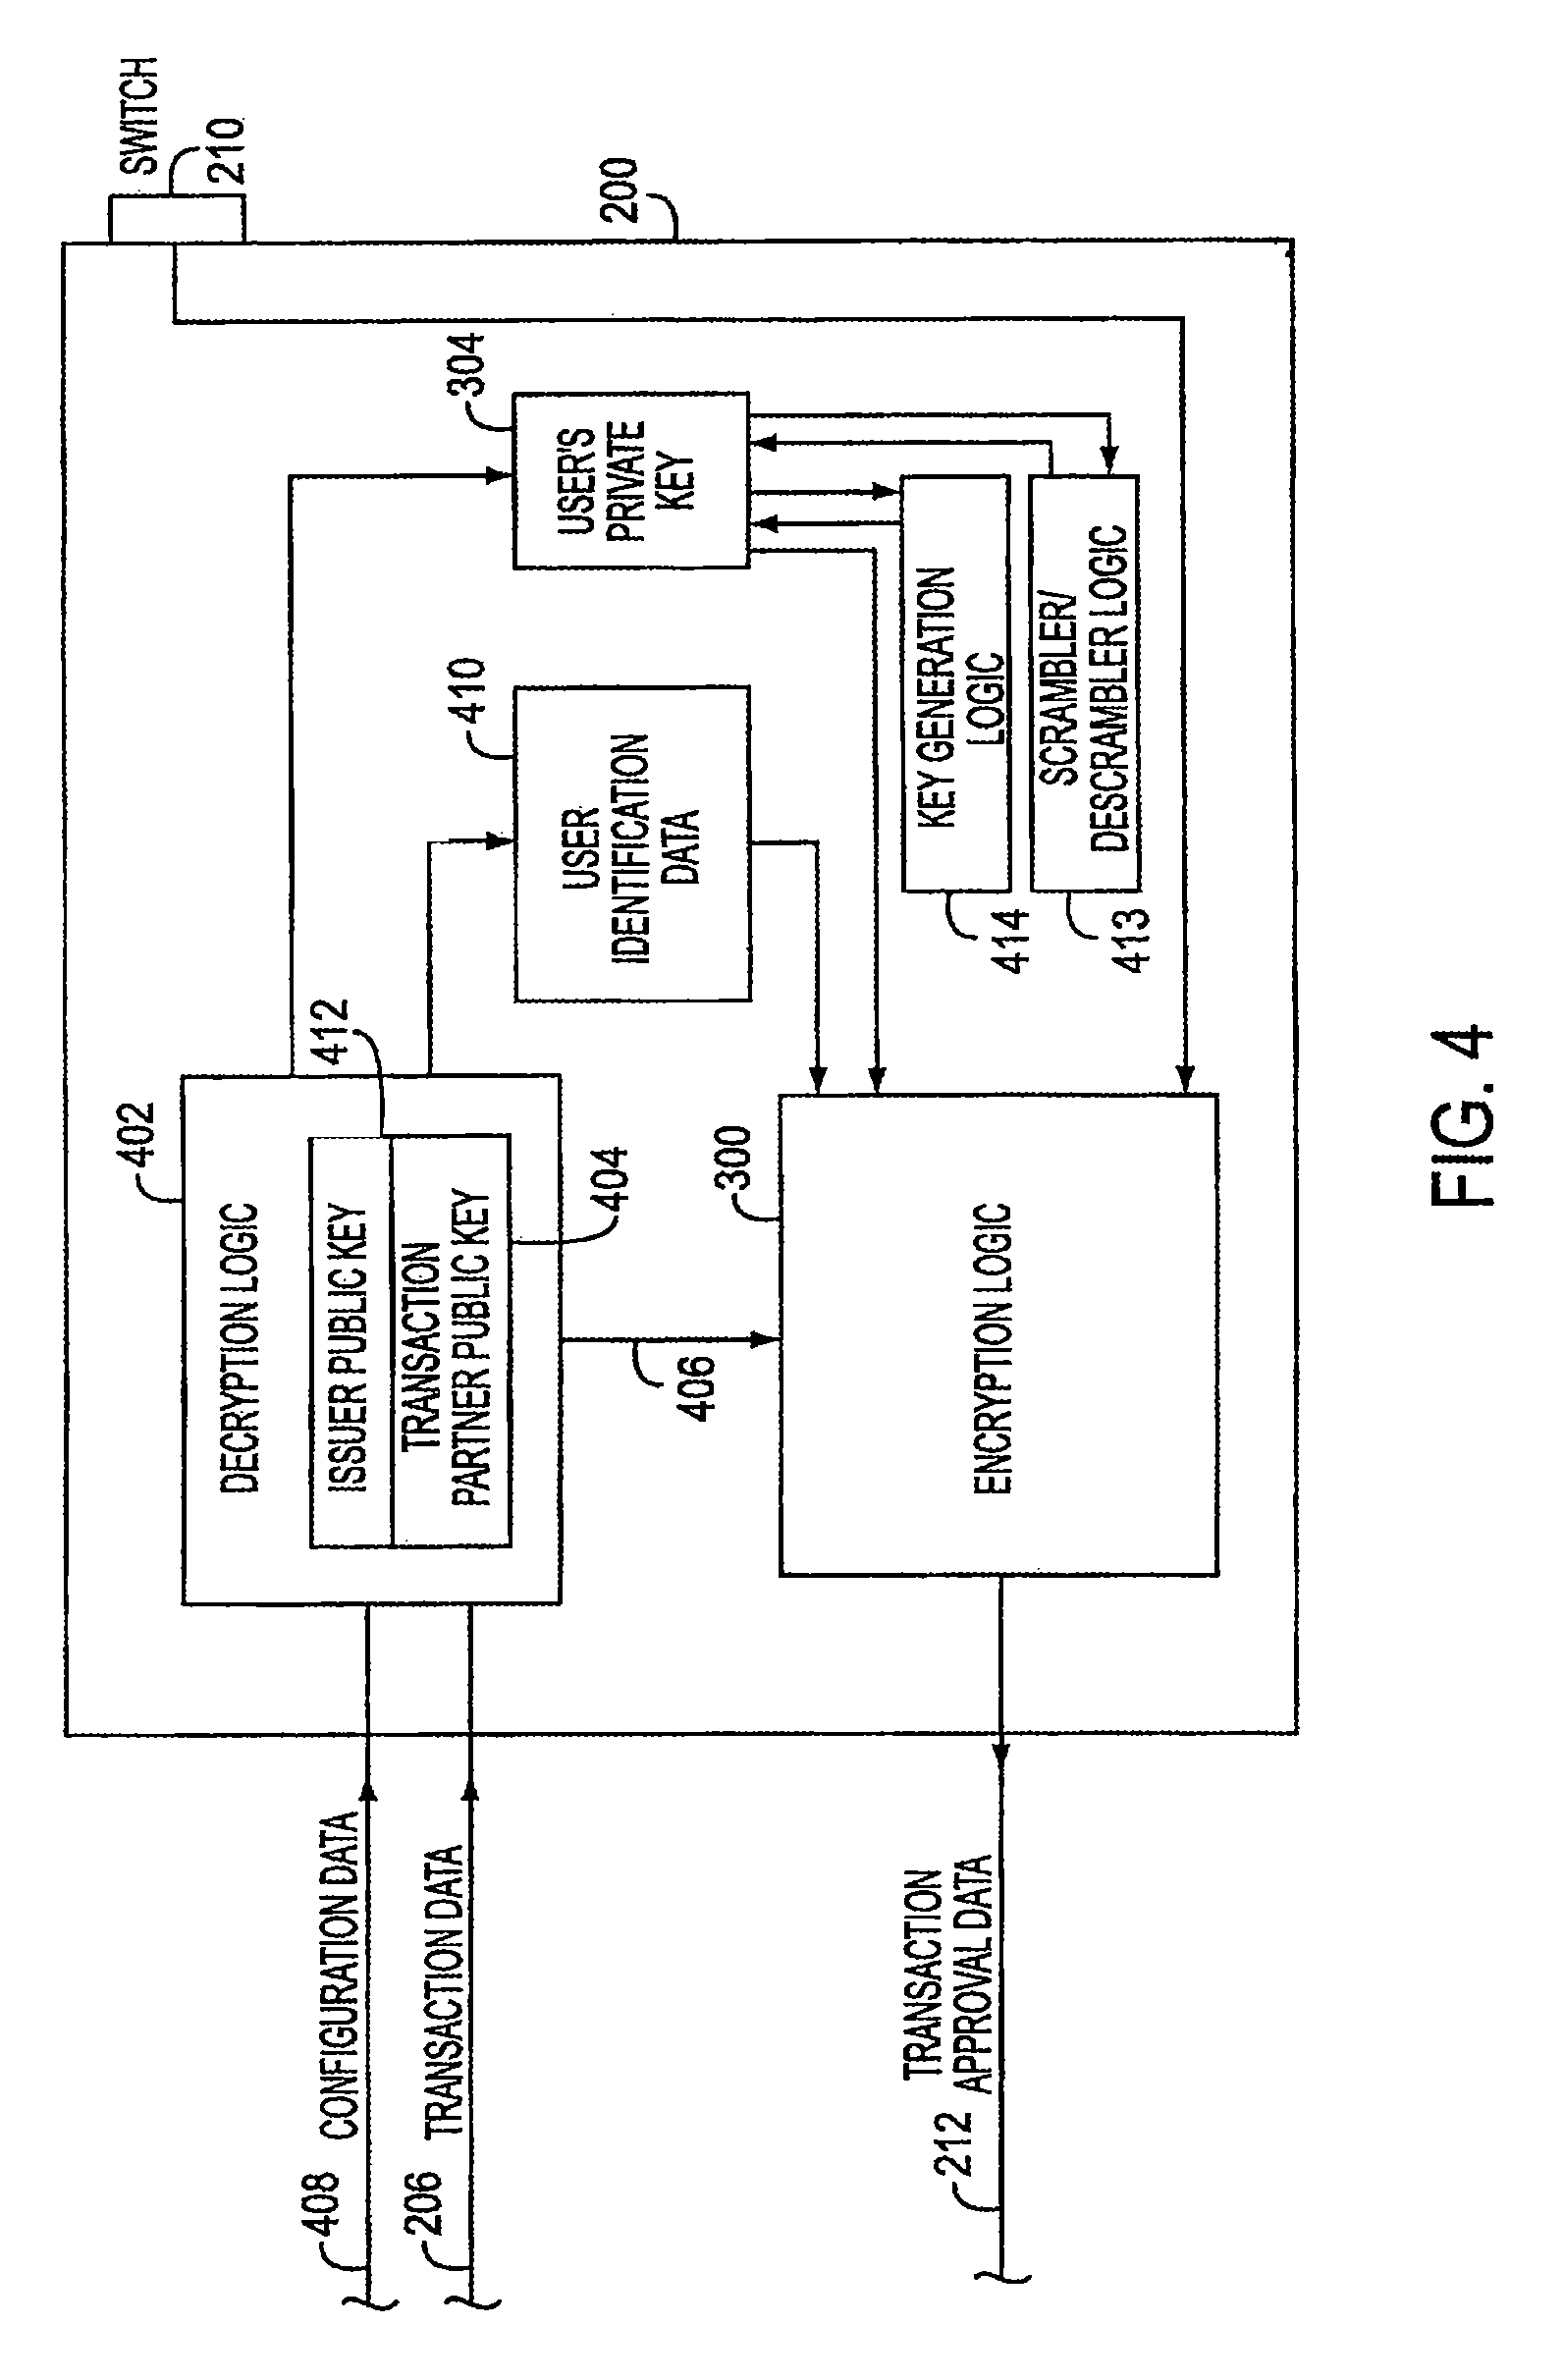 Patent Us8016189 Electronic Transaction Systems And Methods Numeric Ups Circuit Diagram Drawing